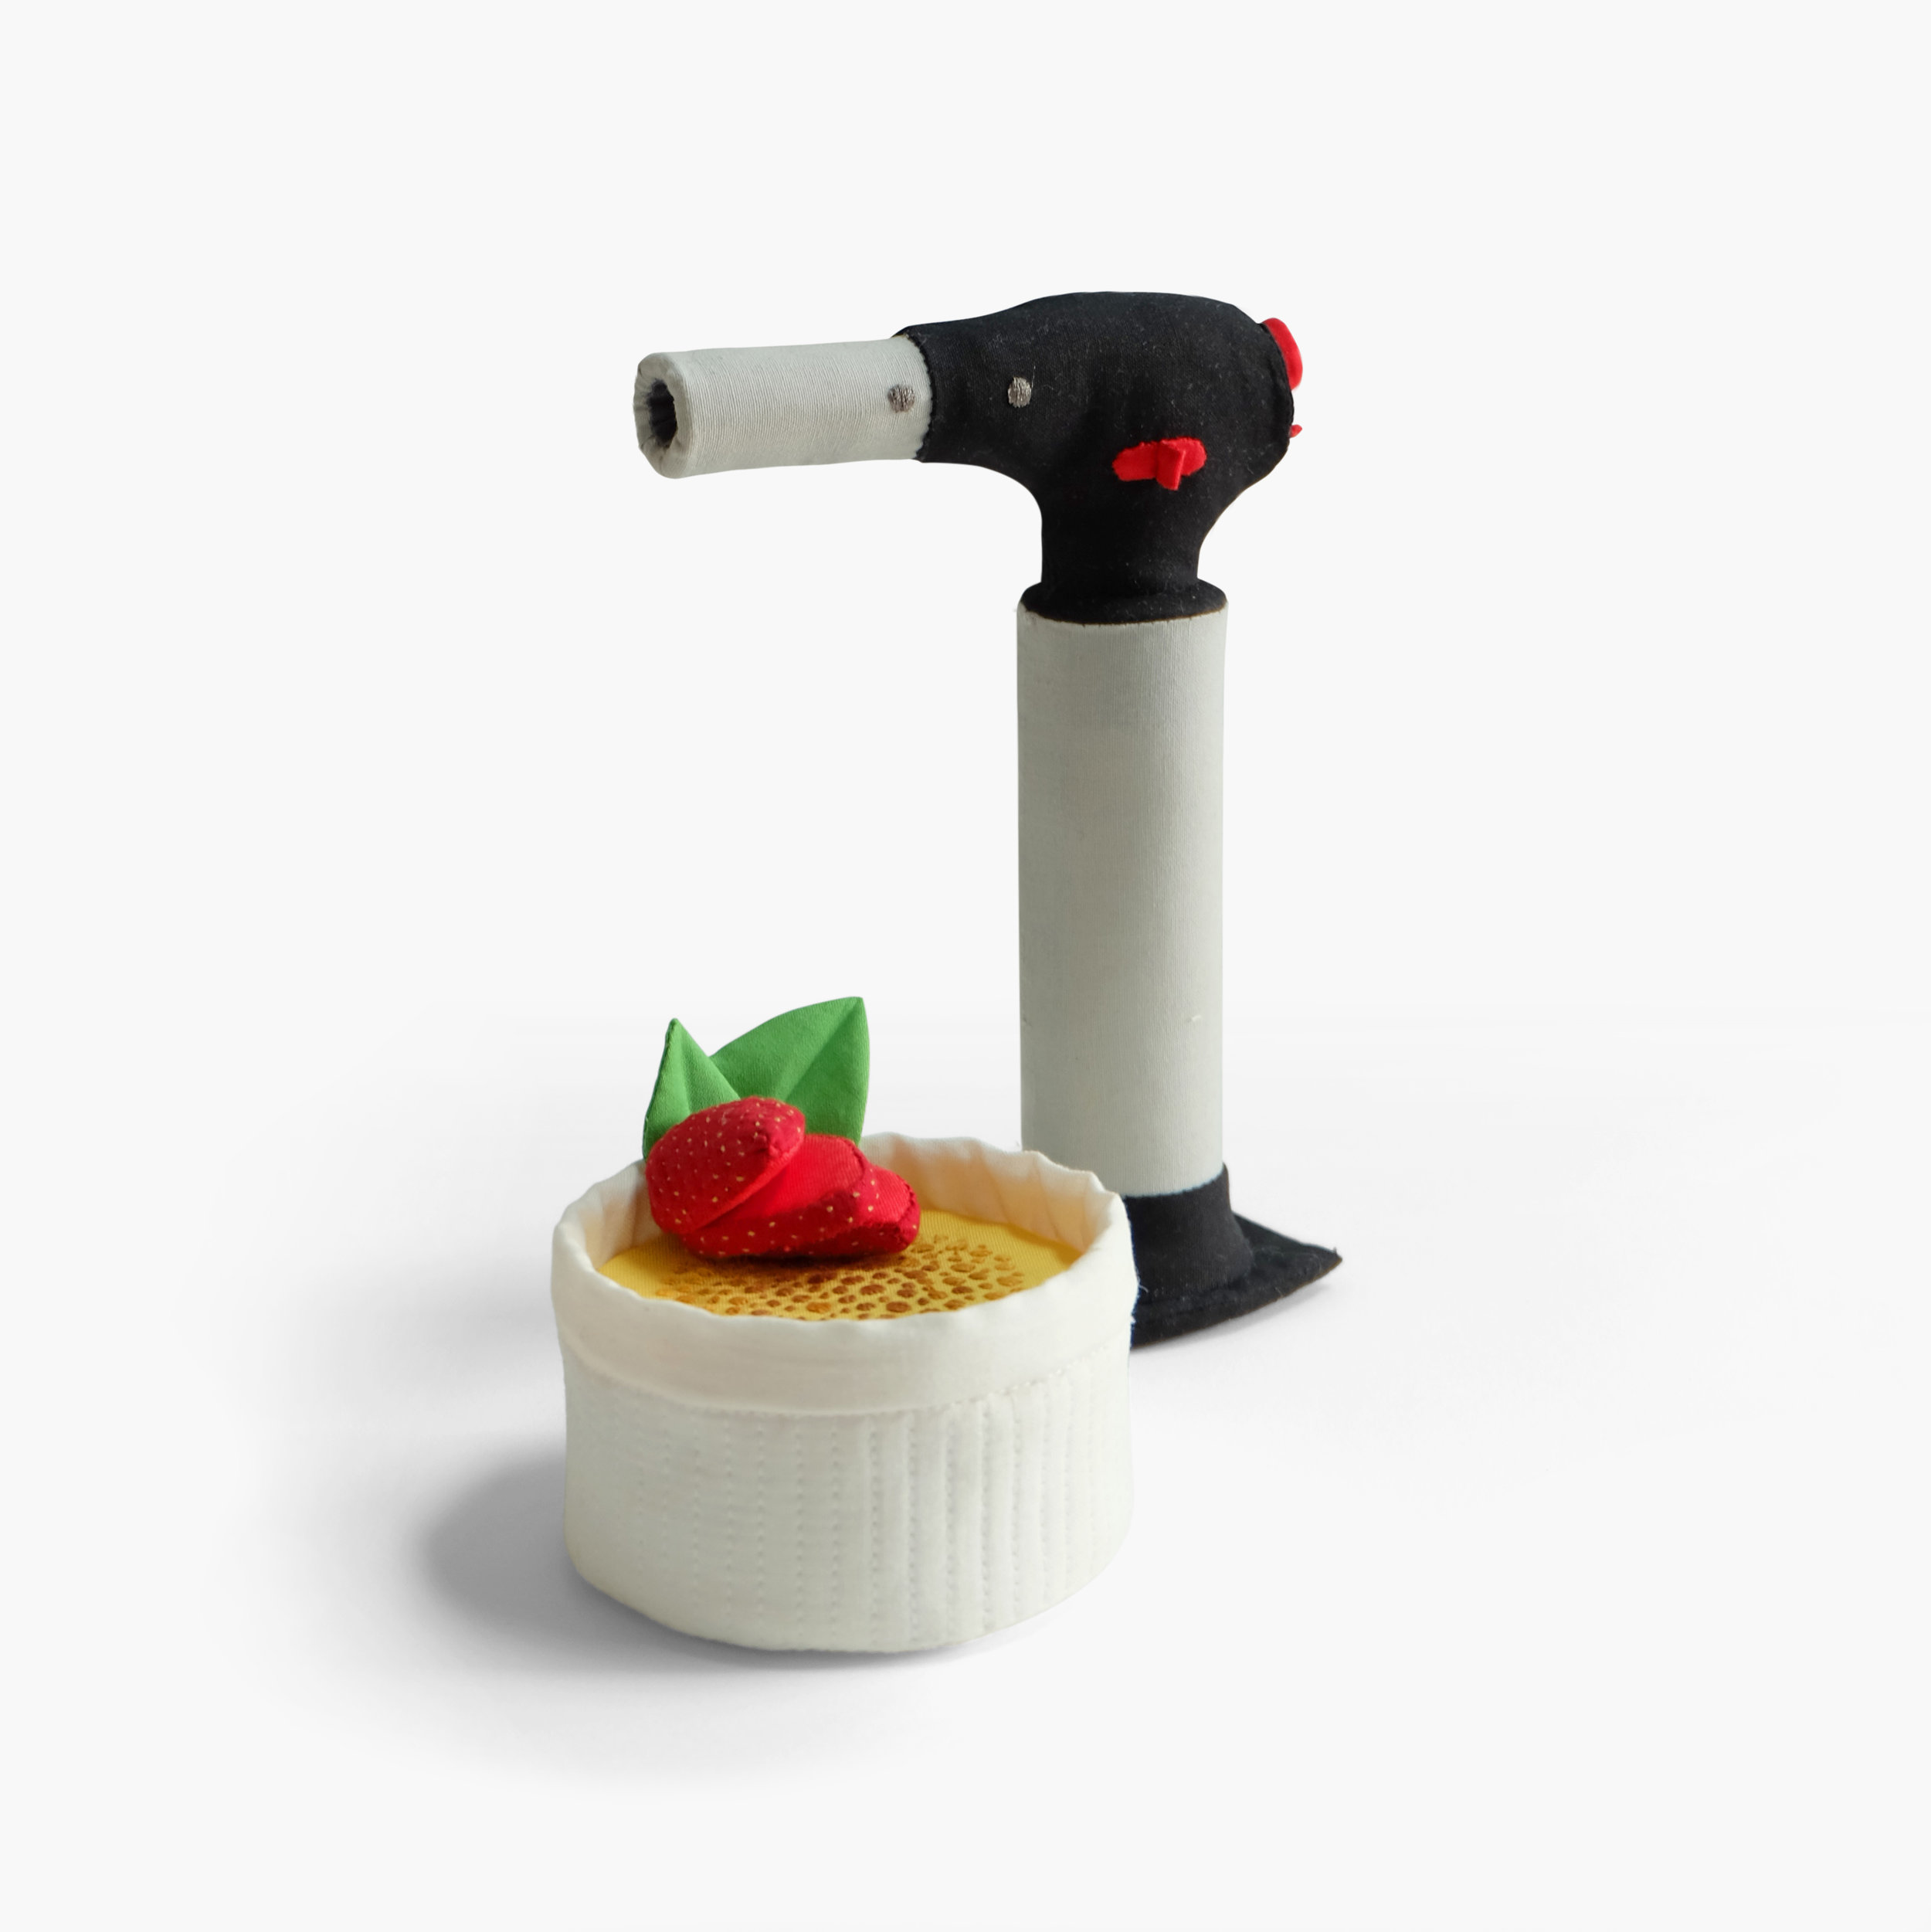 Sous Vide for One    Crème brûlée and kitchen torch   Fiberfill, felt, cotton cloth, embroidery floss Approximately 7.5 x 5.25 x 6 in 2014